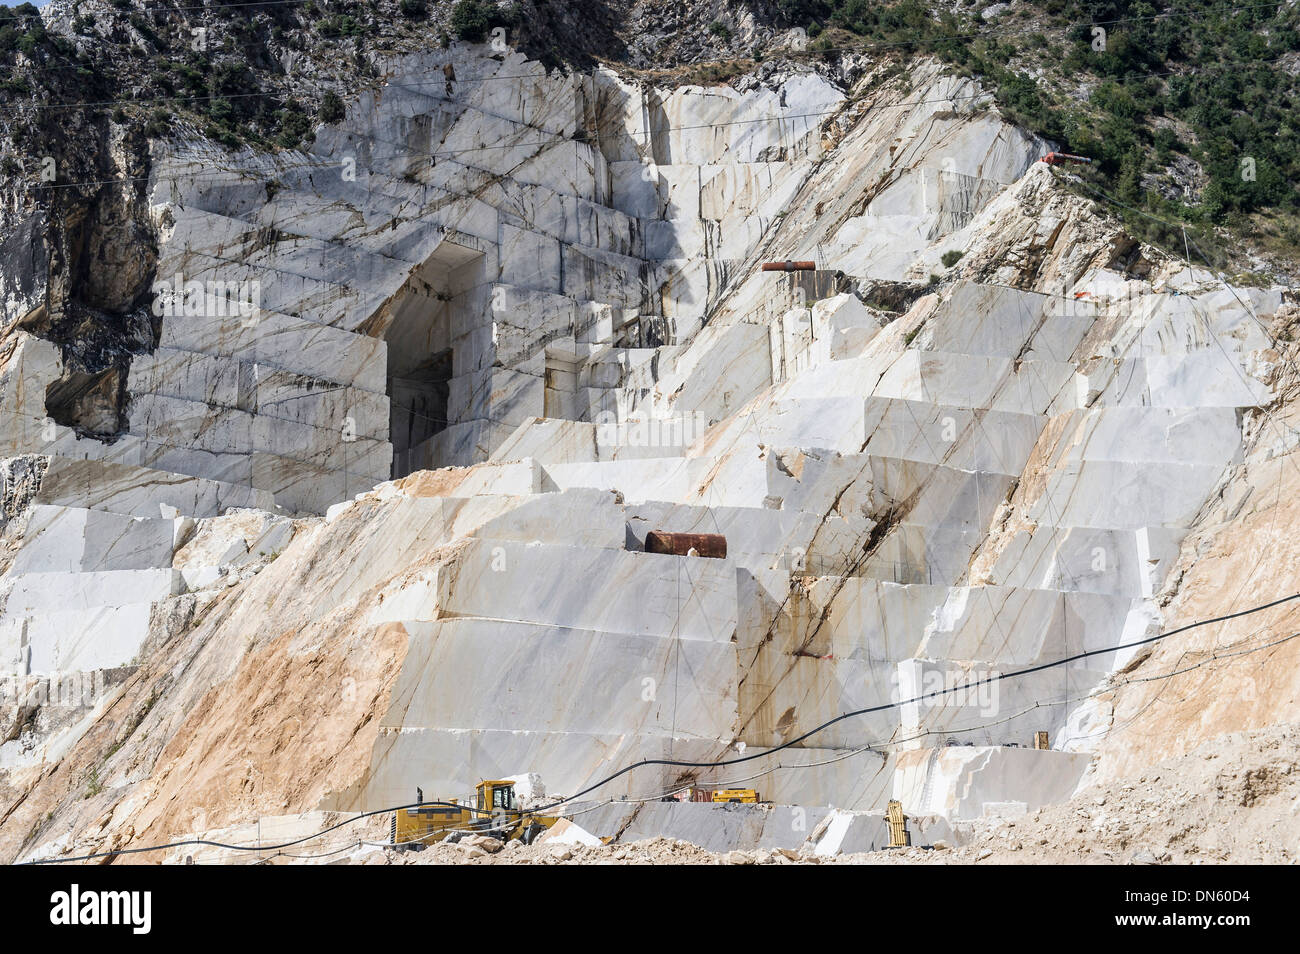 Marble quarries at Carrara, Province of Massa-Carrara, Tuscany, Italy - Stock Image